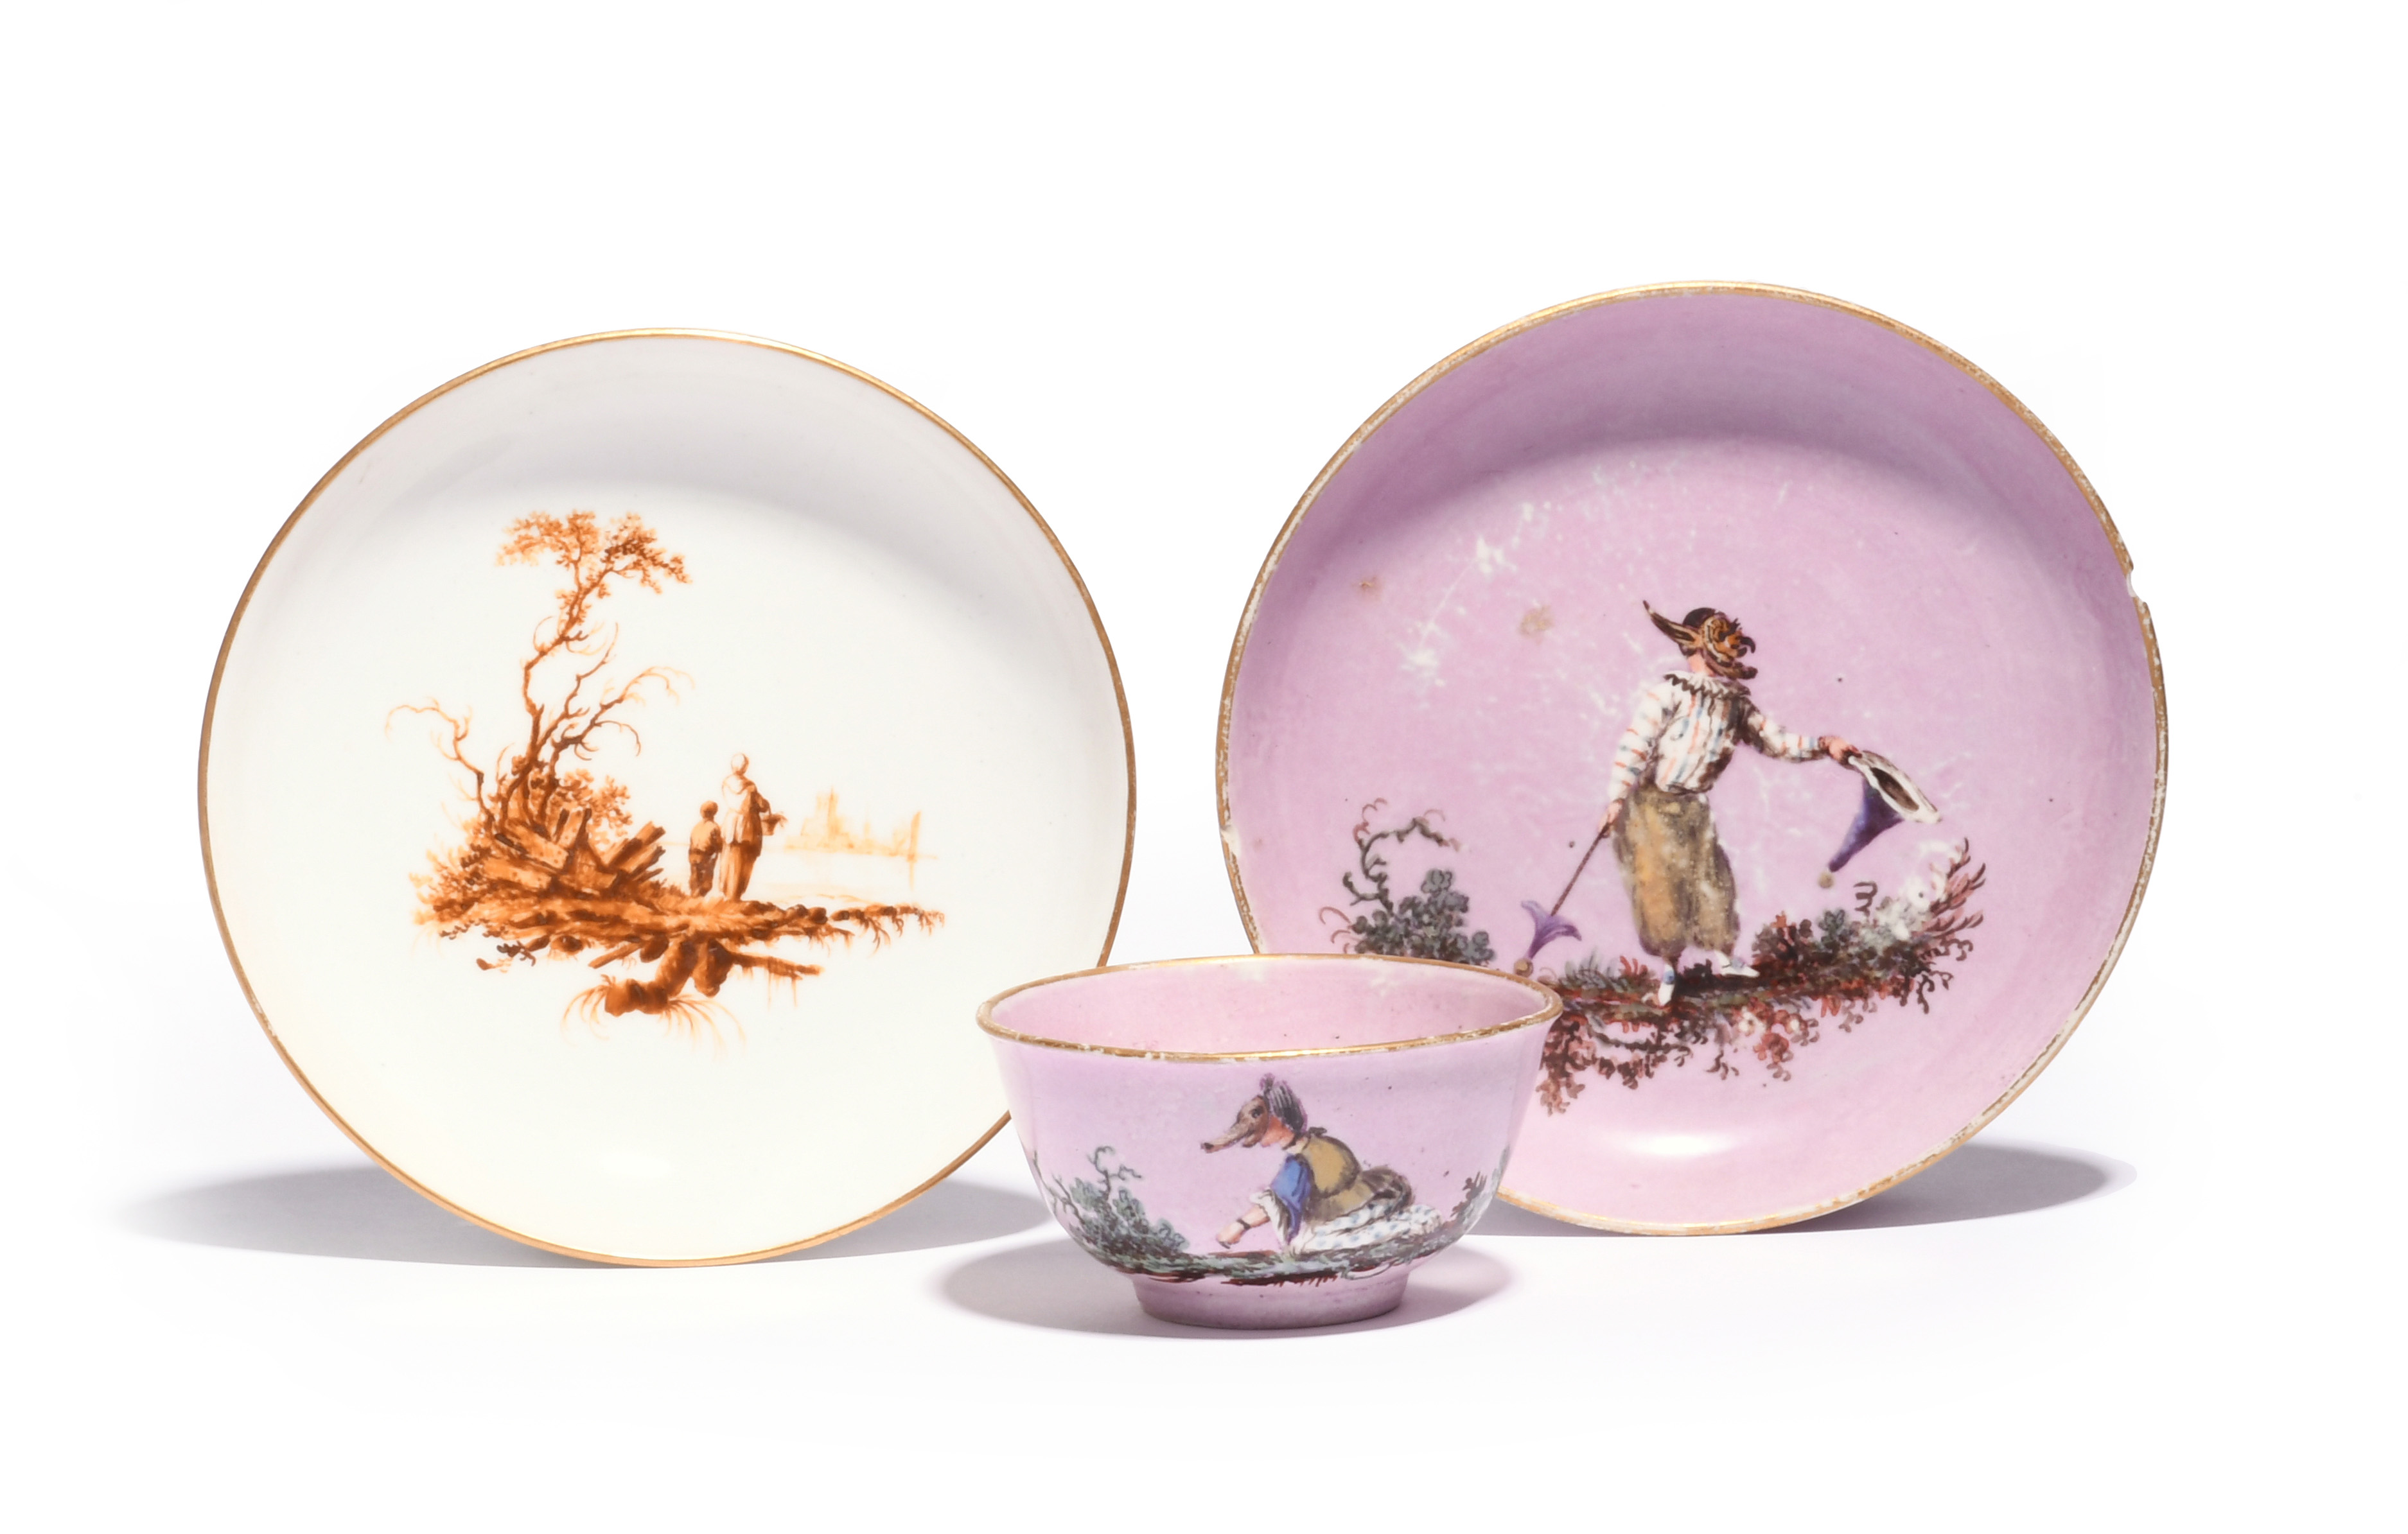 A Loosdrecht lilac ground teabowl and saucer c.1772-75, painted with masked figures from the